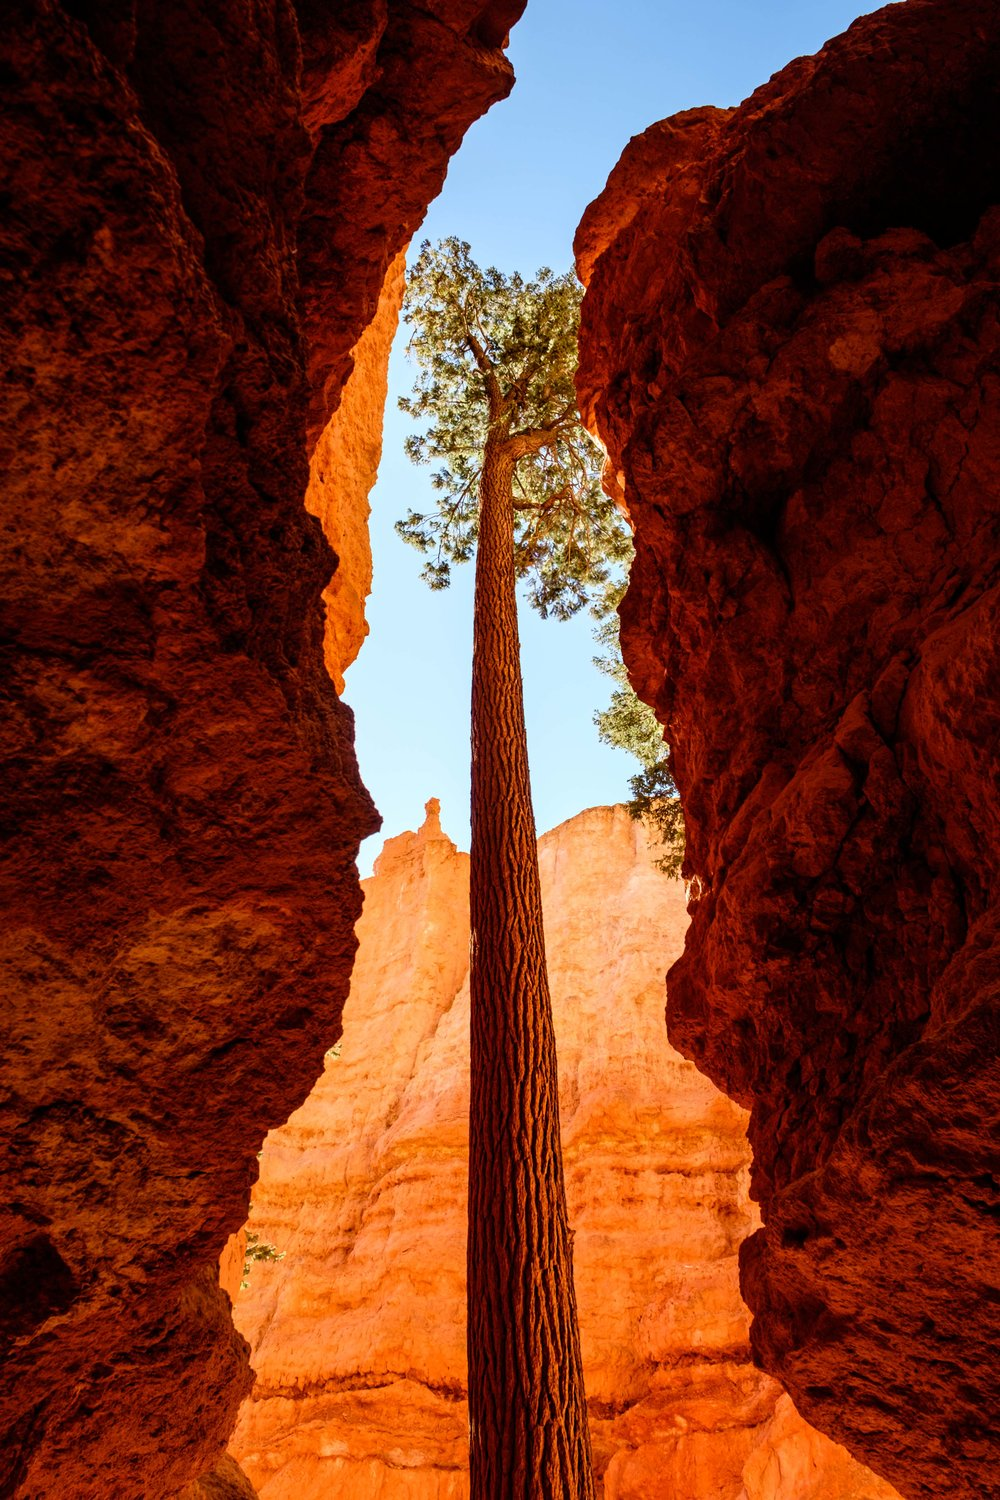 With such steep canyon walls, trees must grow tall to get the required sunlight!